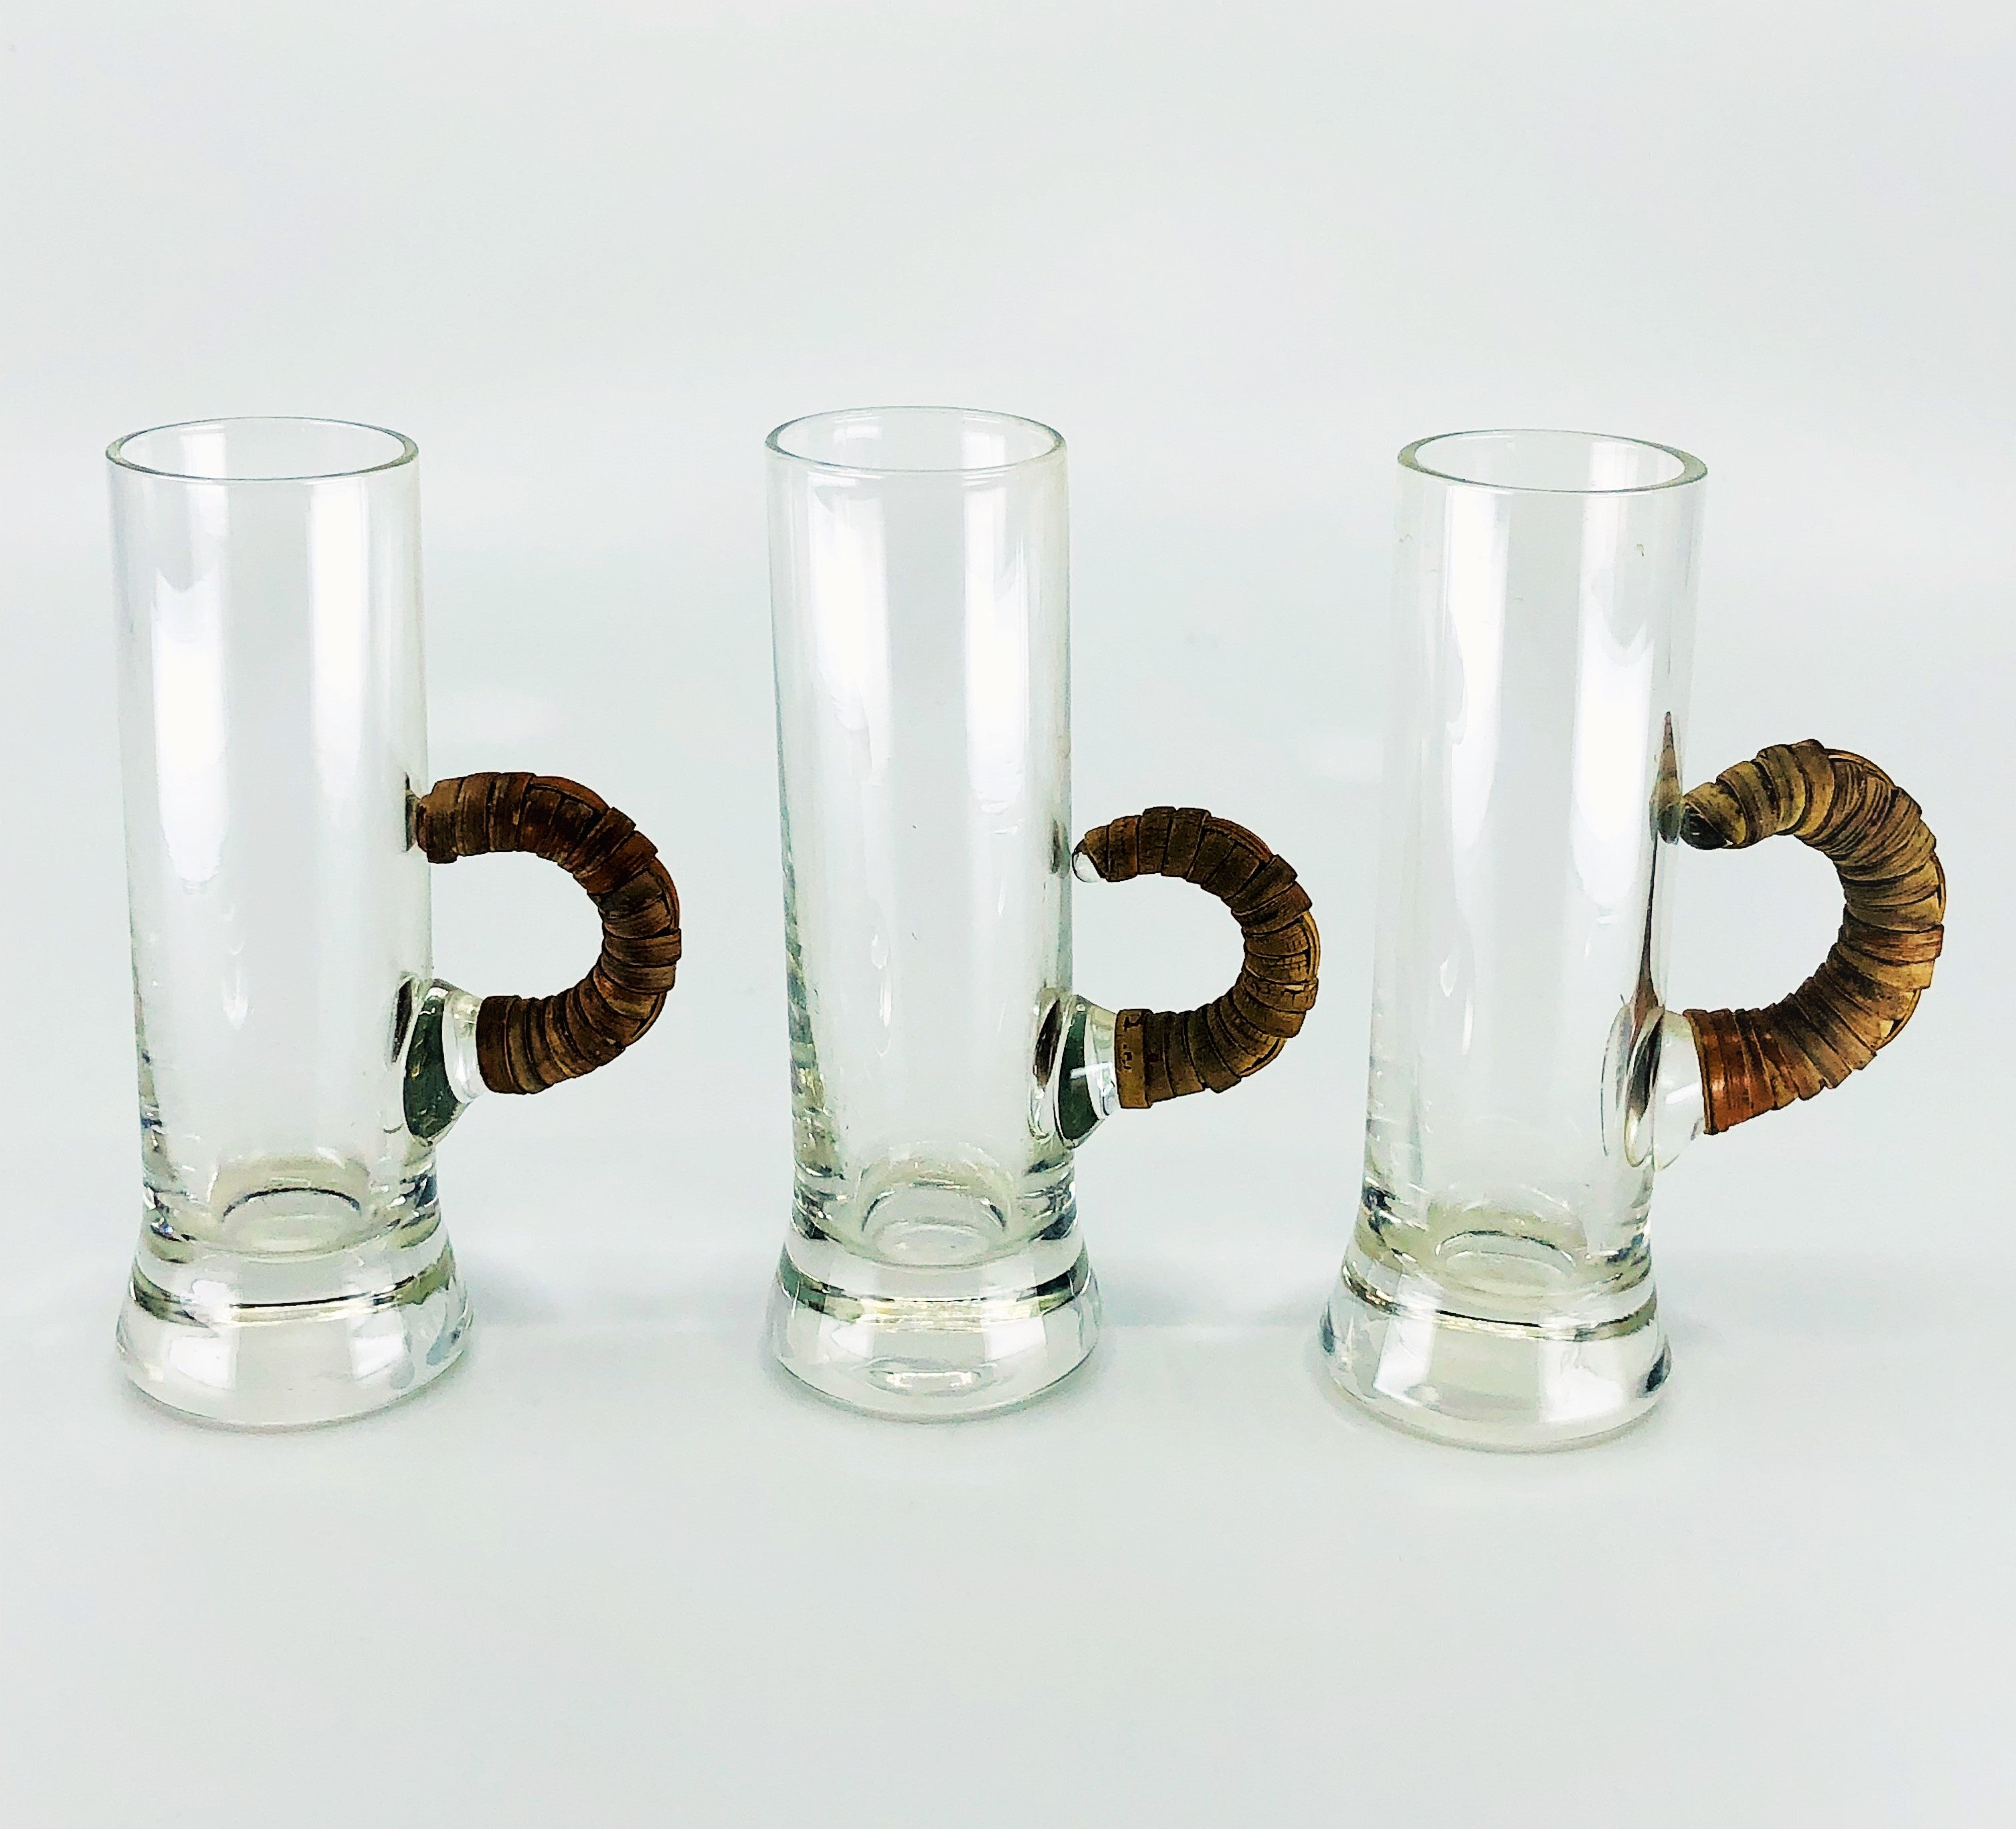 Retro Scandinavian Style Shot Glasses with Wicker Handles, Set of 3